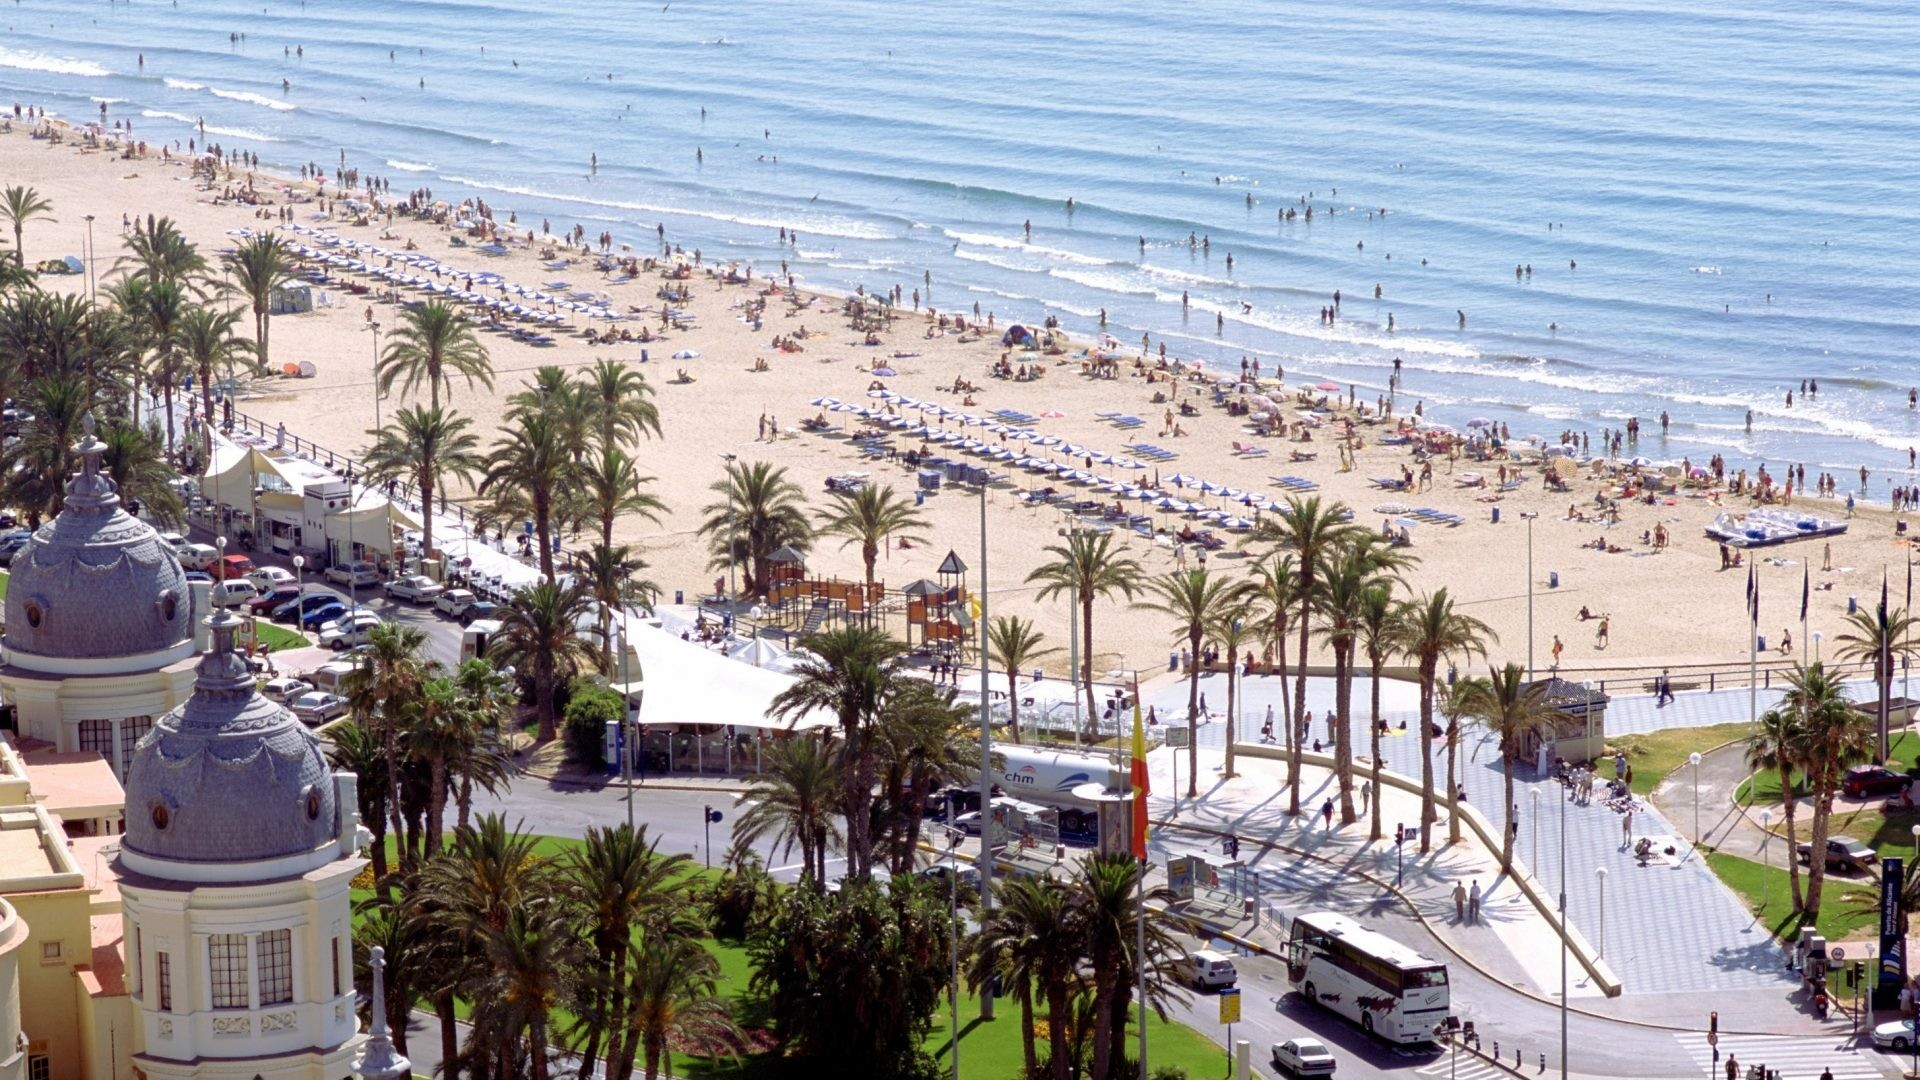 1920x1080 El Tag - Buildings Alicante Postiguet Beach El Palm 3d Nature Wallpaper For  Pc Desktop Free